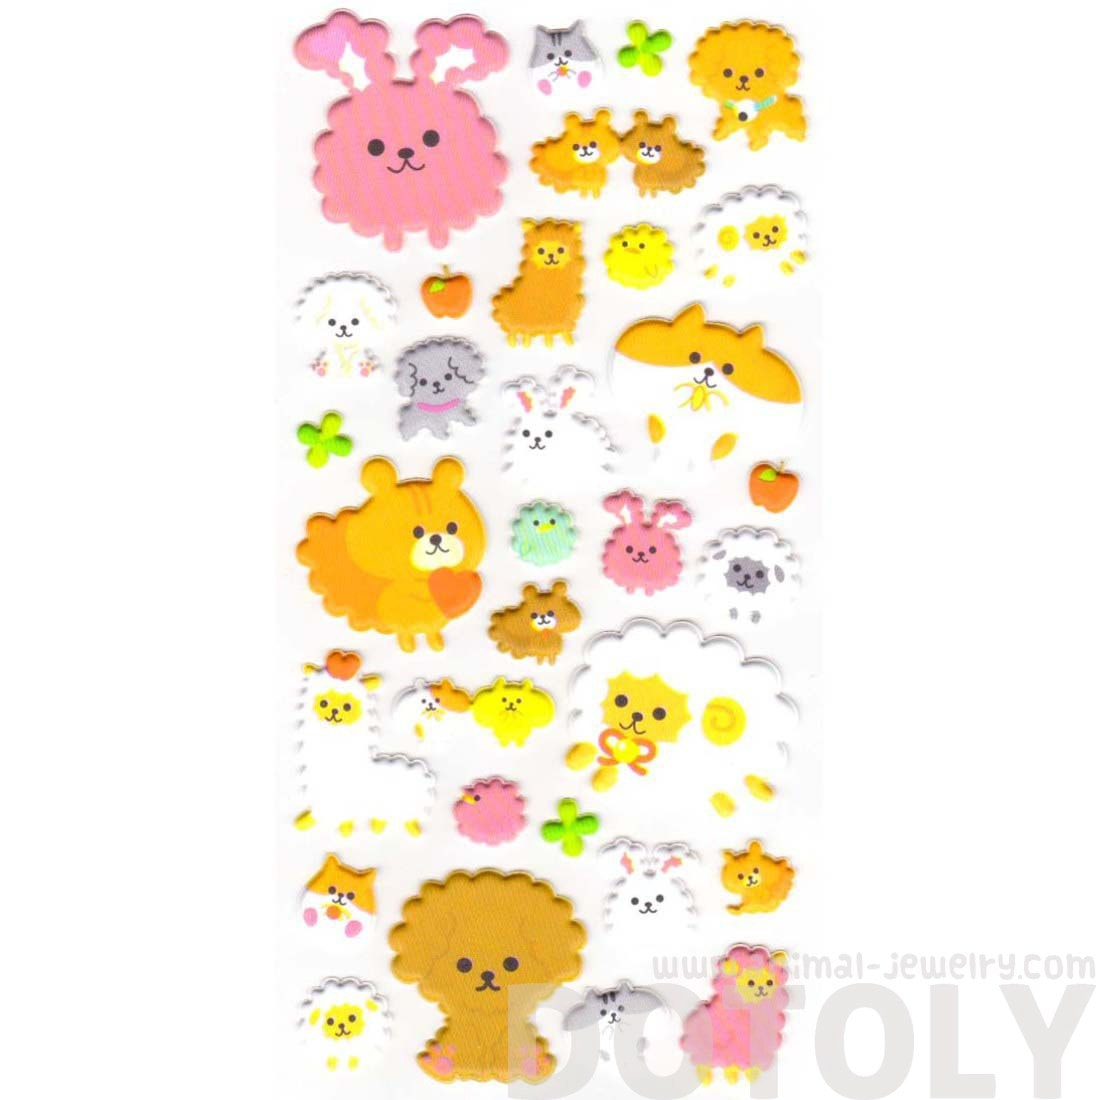 Kawaii Bunny Rabbit Sheep Alpaca Animal Shaped Stickers